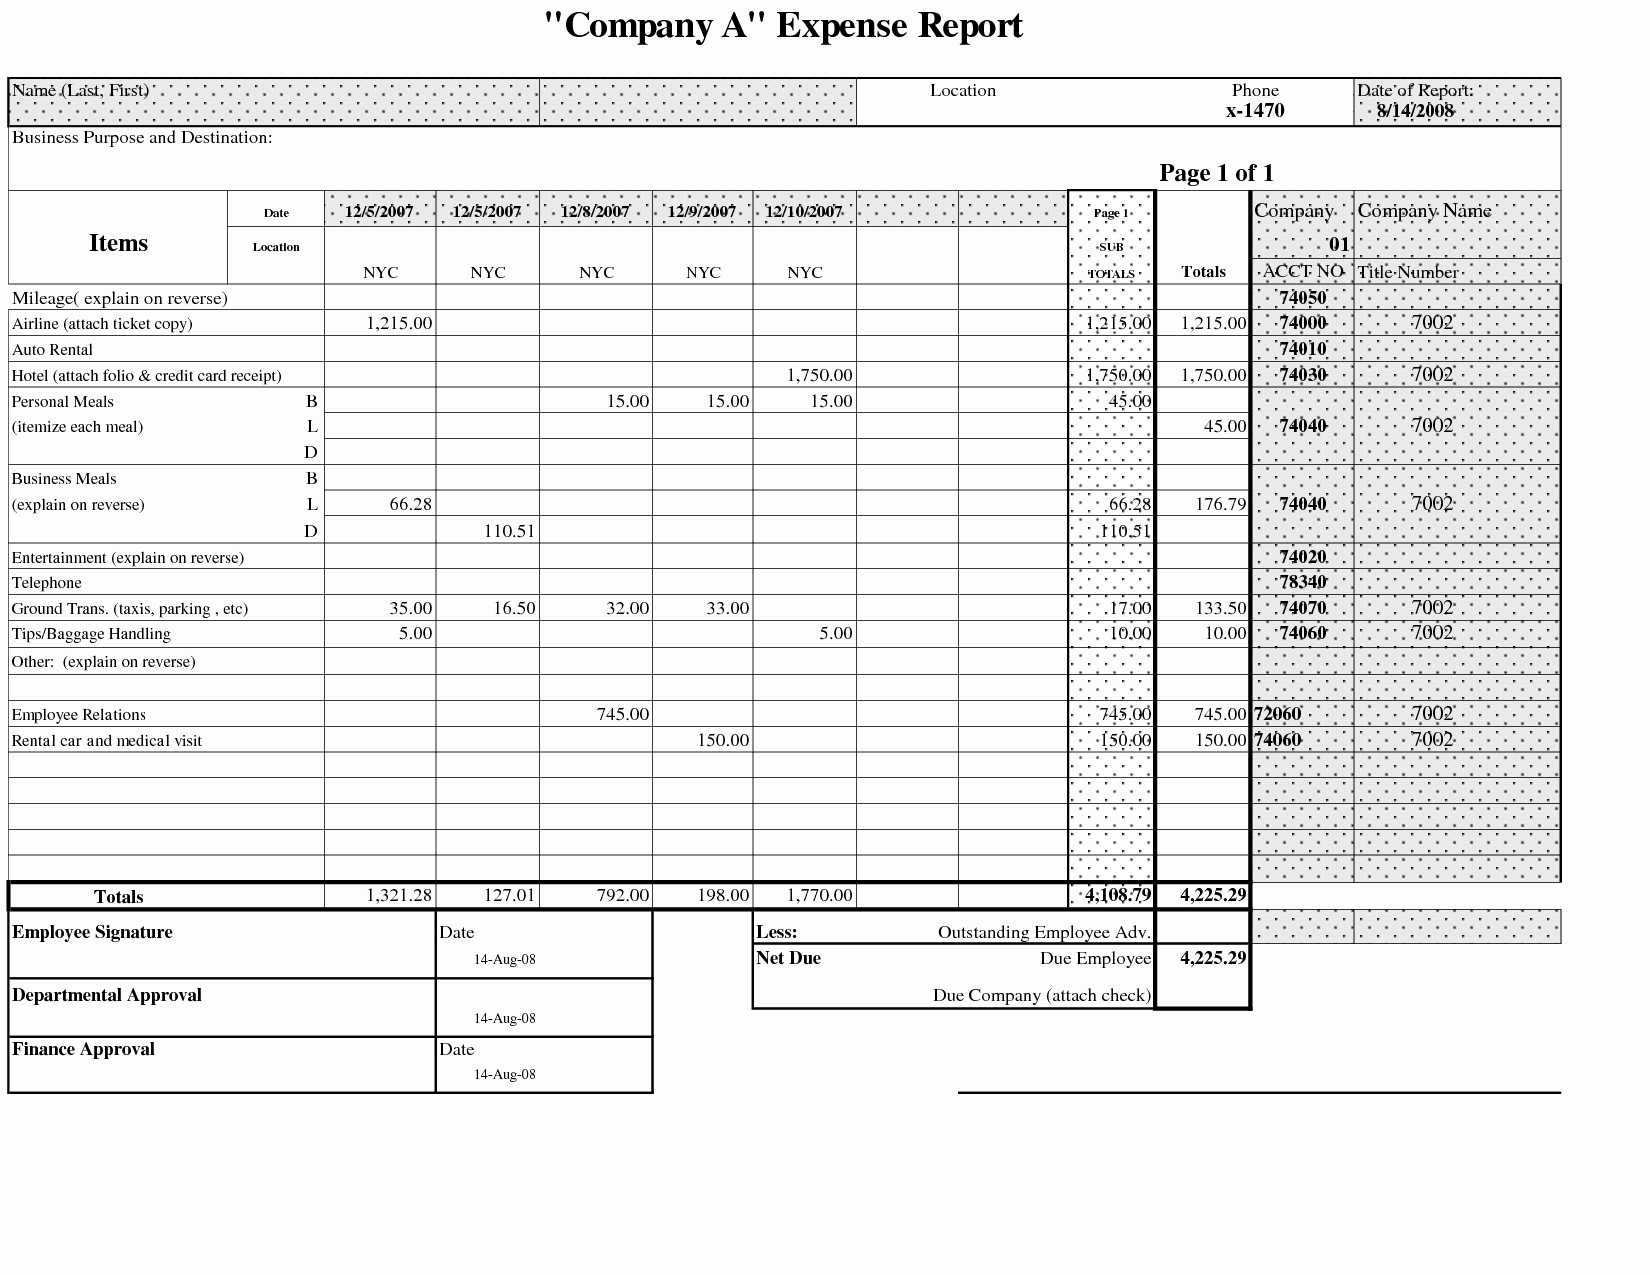 Gas Mileage Spreadsheet Of Annual Expense Report Template Or Within Gas Mileage Expense Report Template